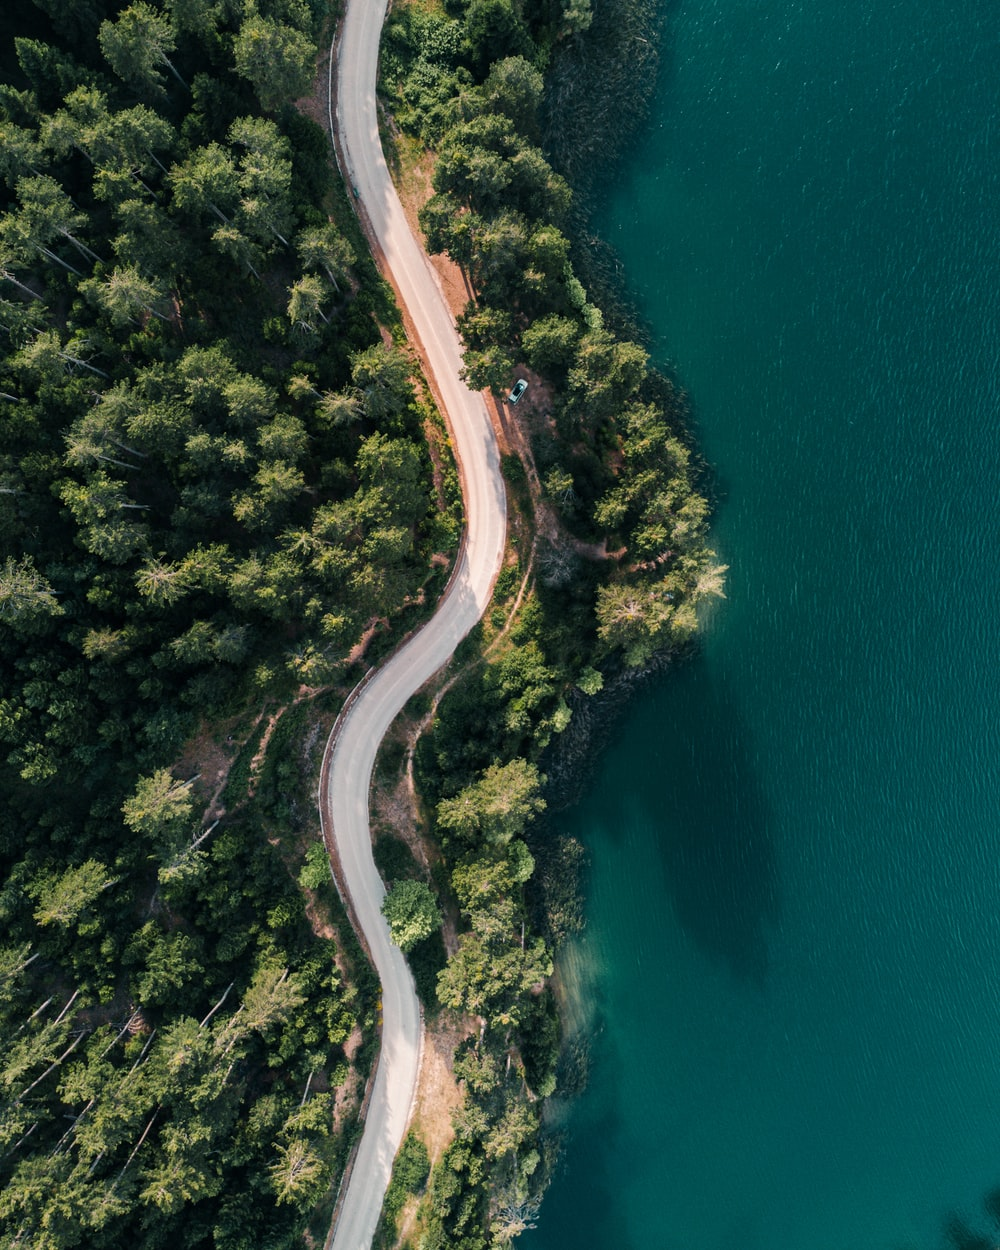 aerial view of road beside body of water during daytime